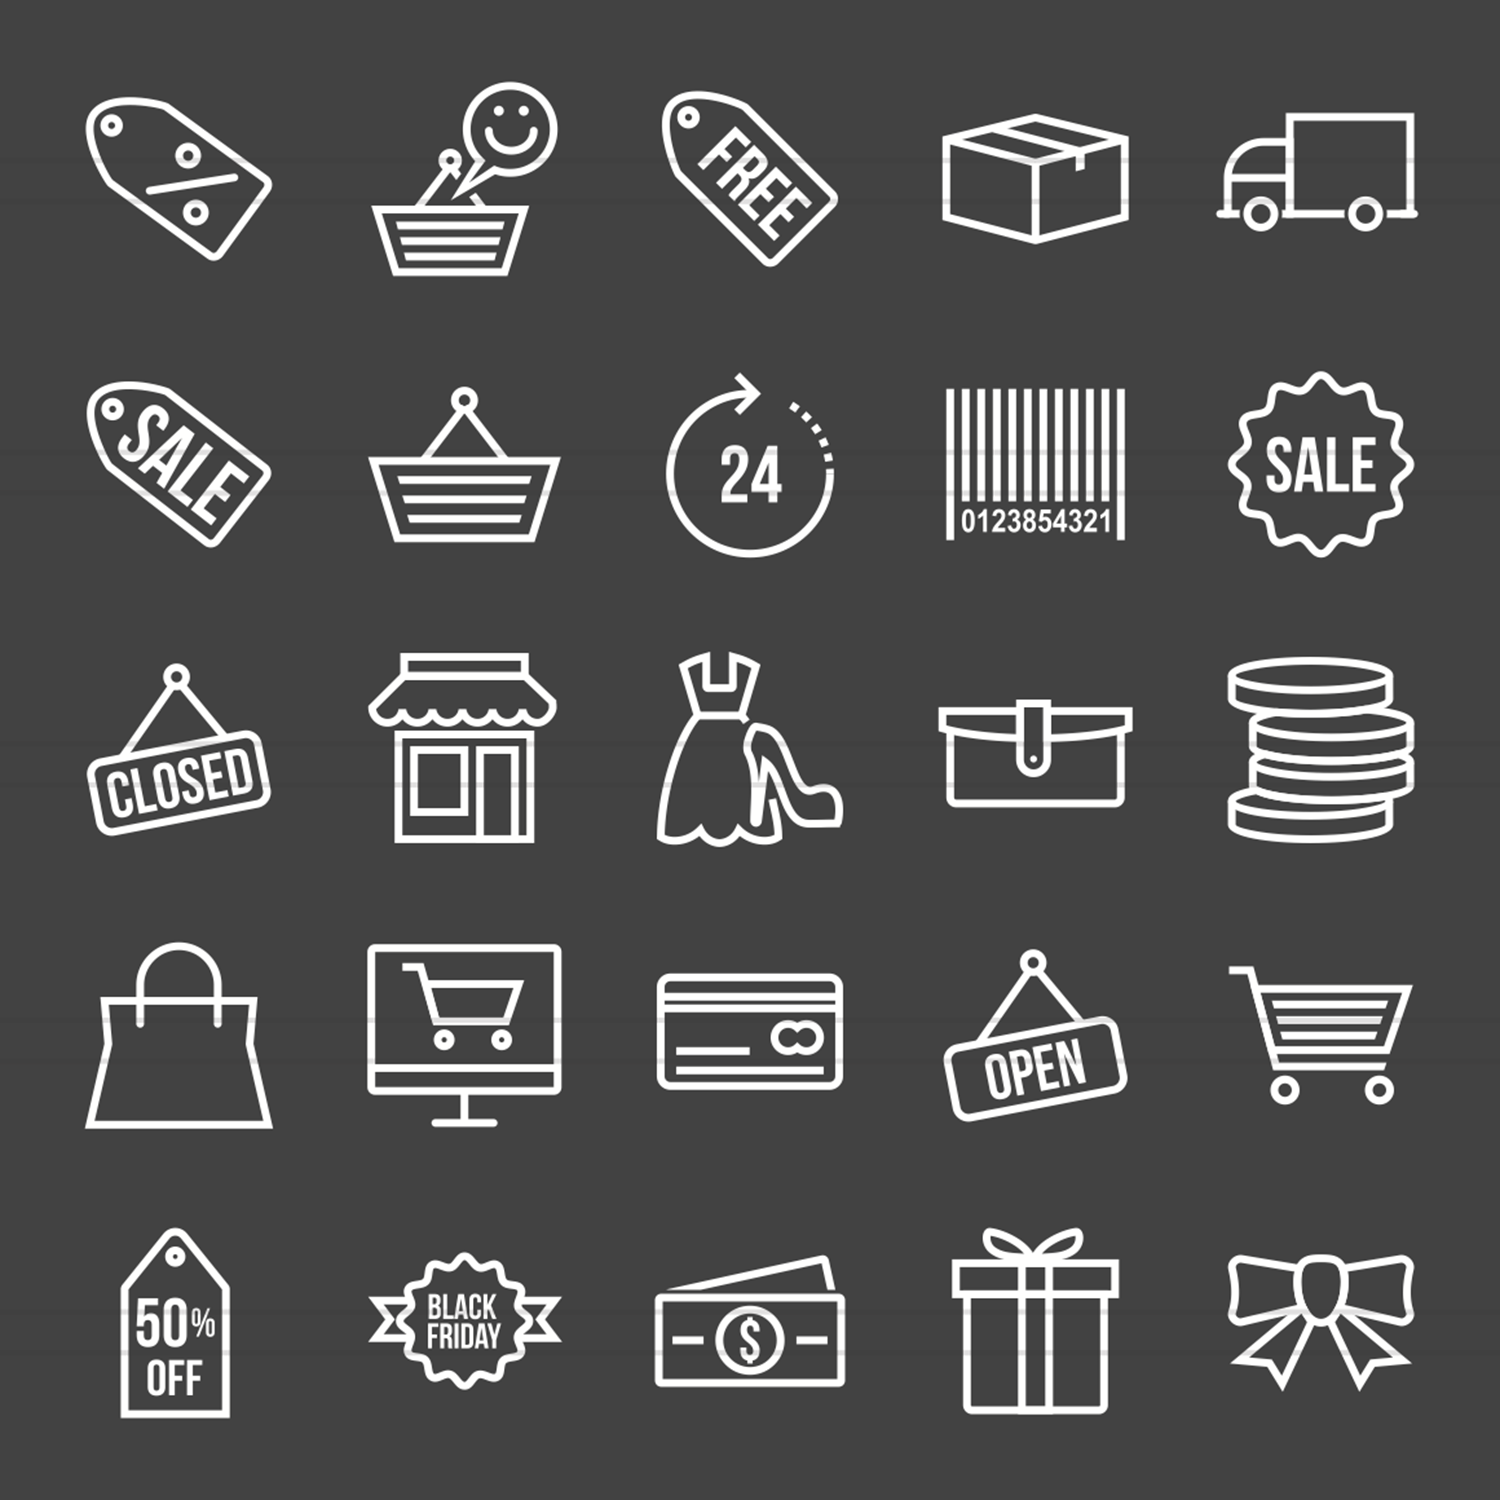 25 Black Friday Inverted Icons example image 2